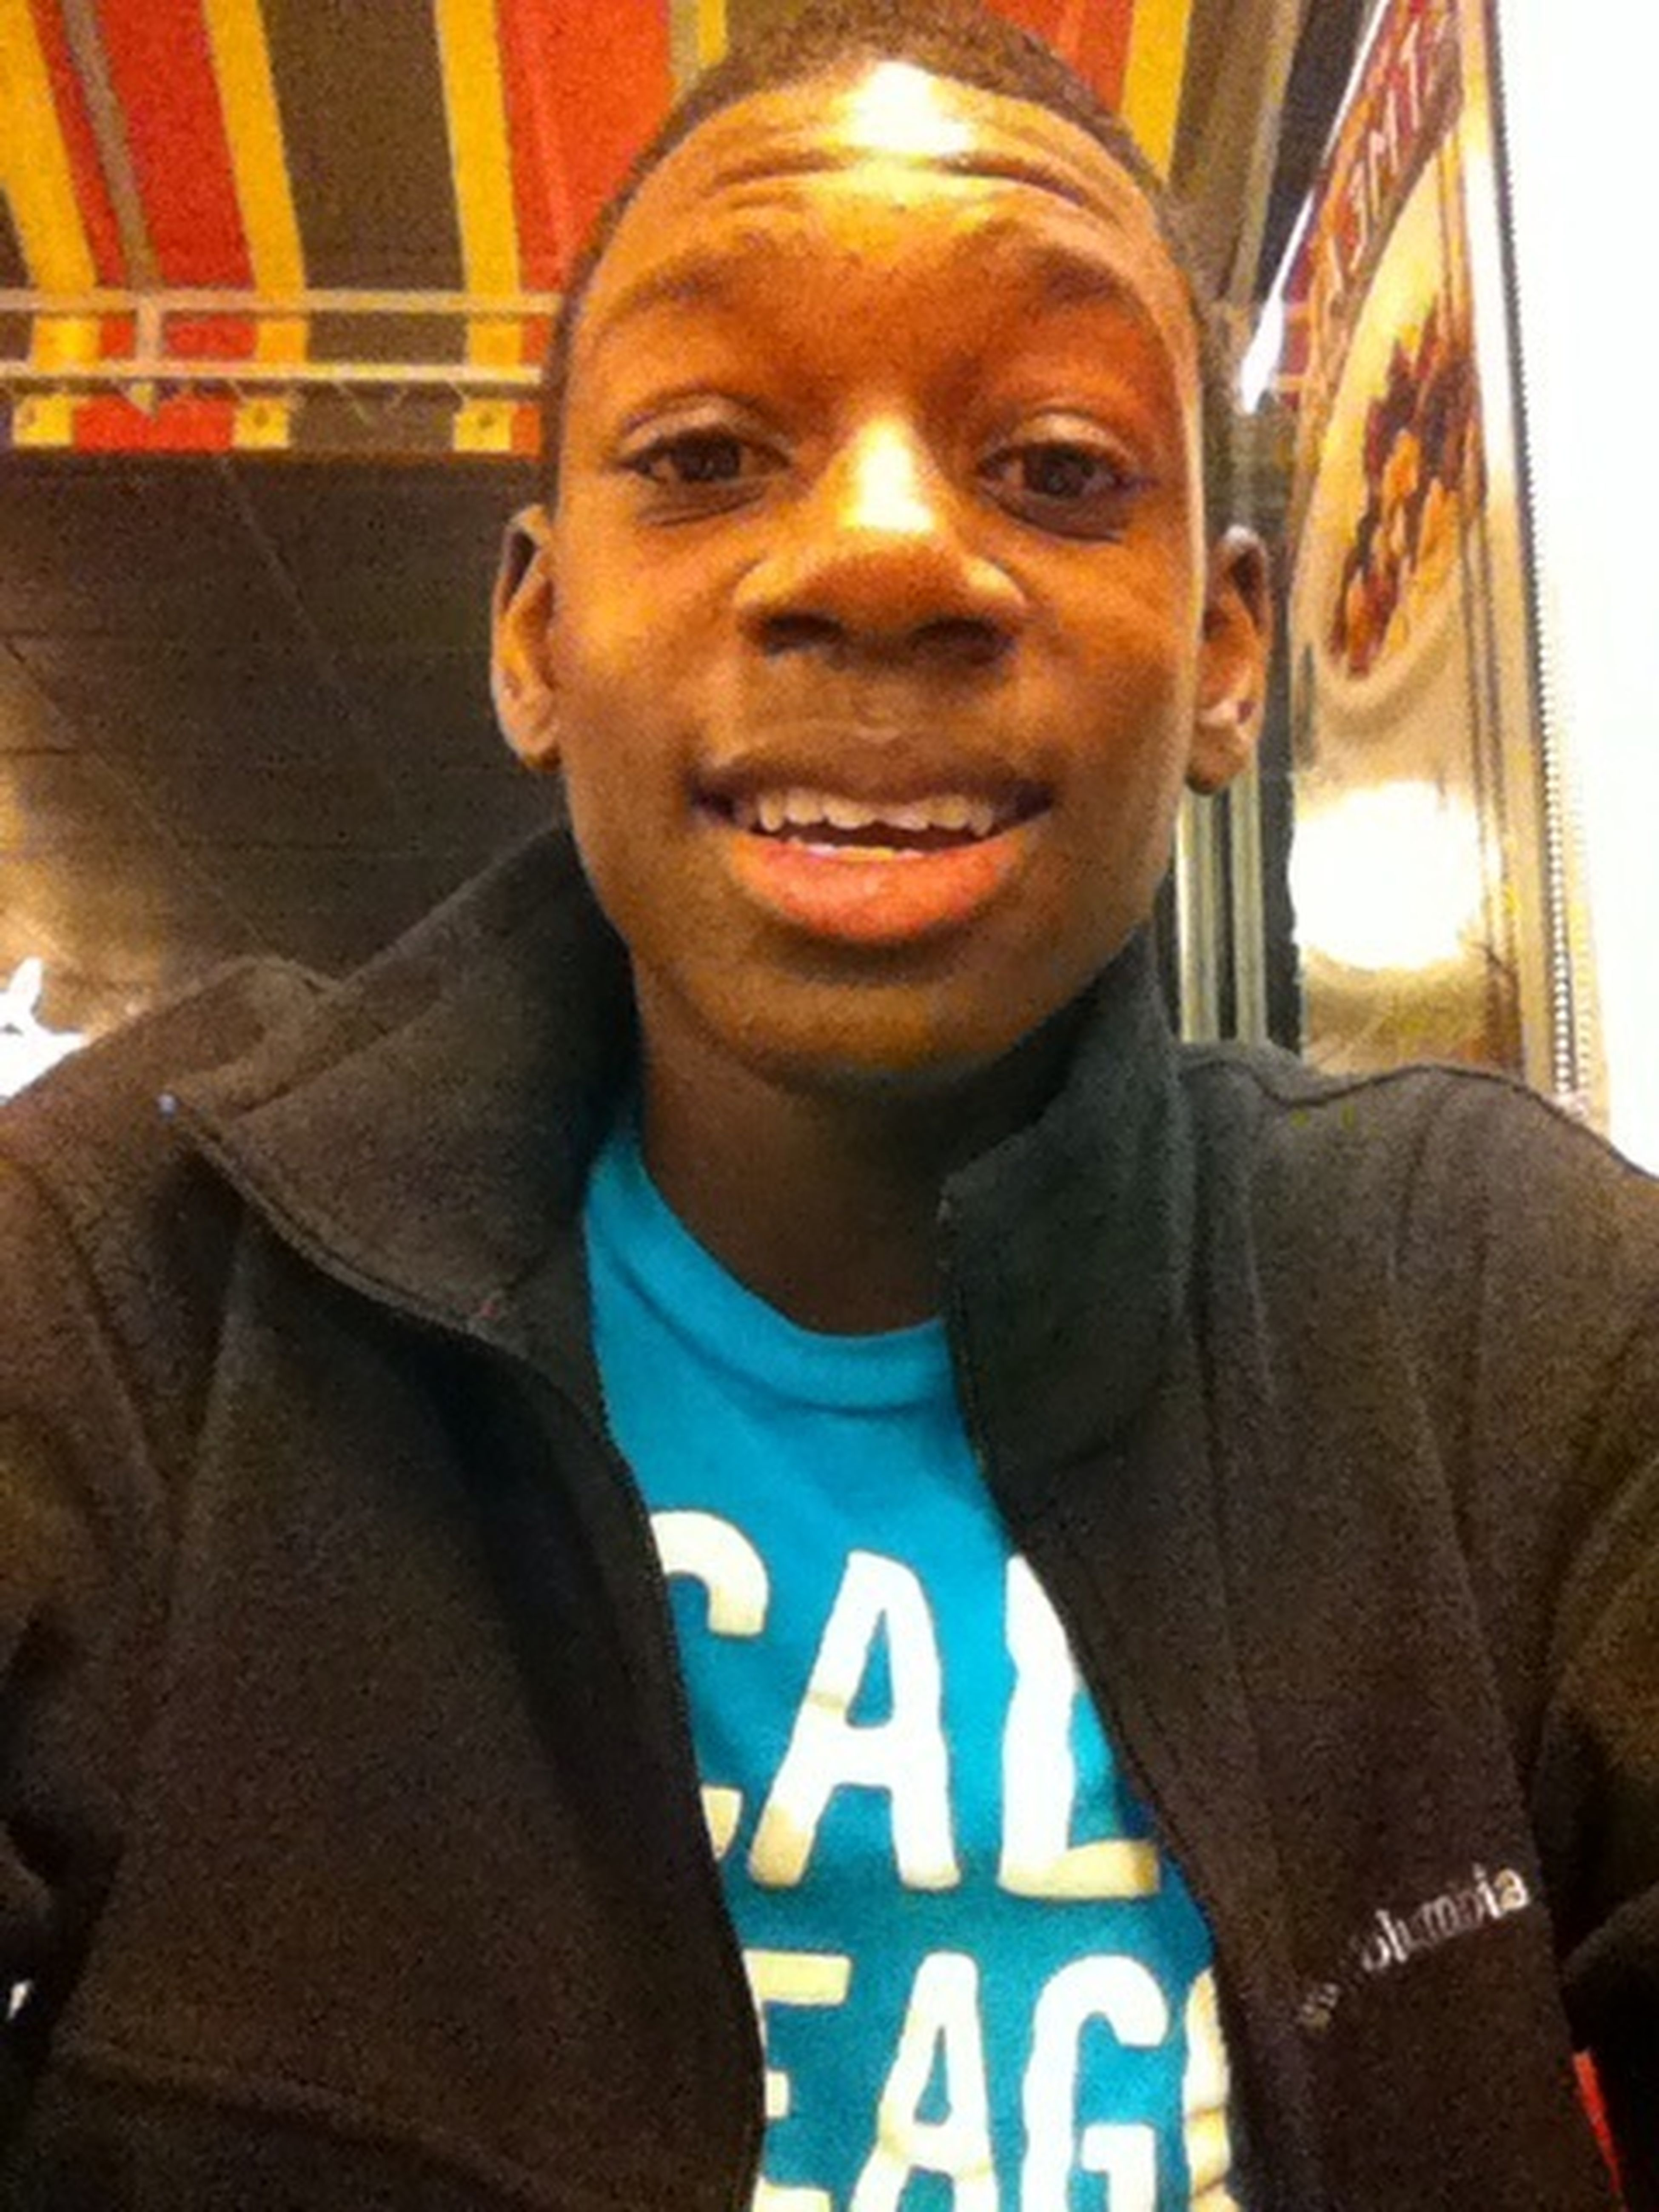 Coolin At Waffle House Last Night!!